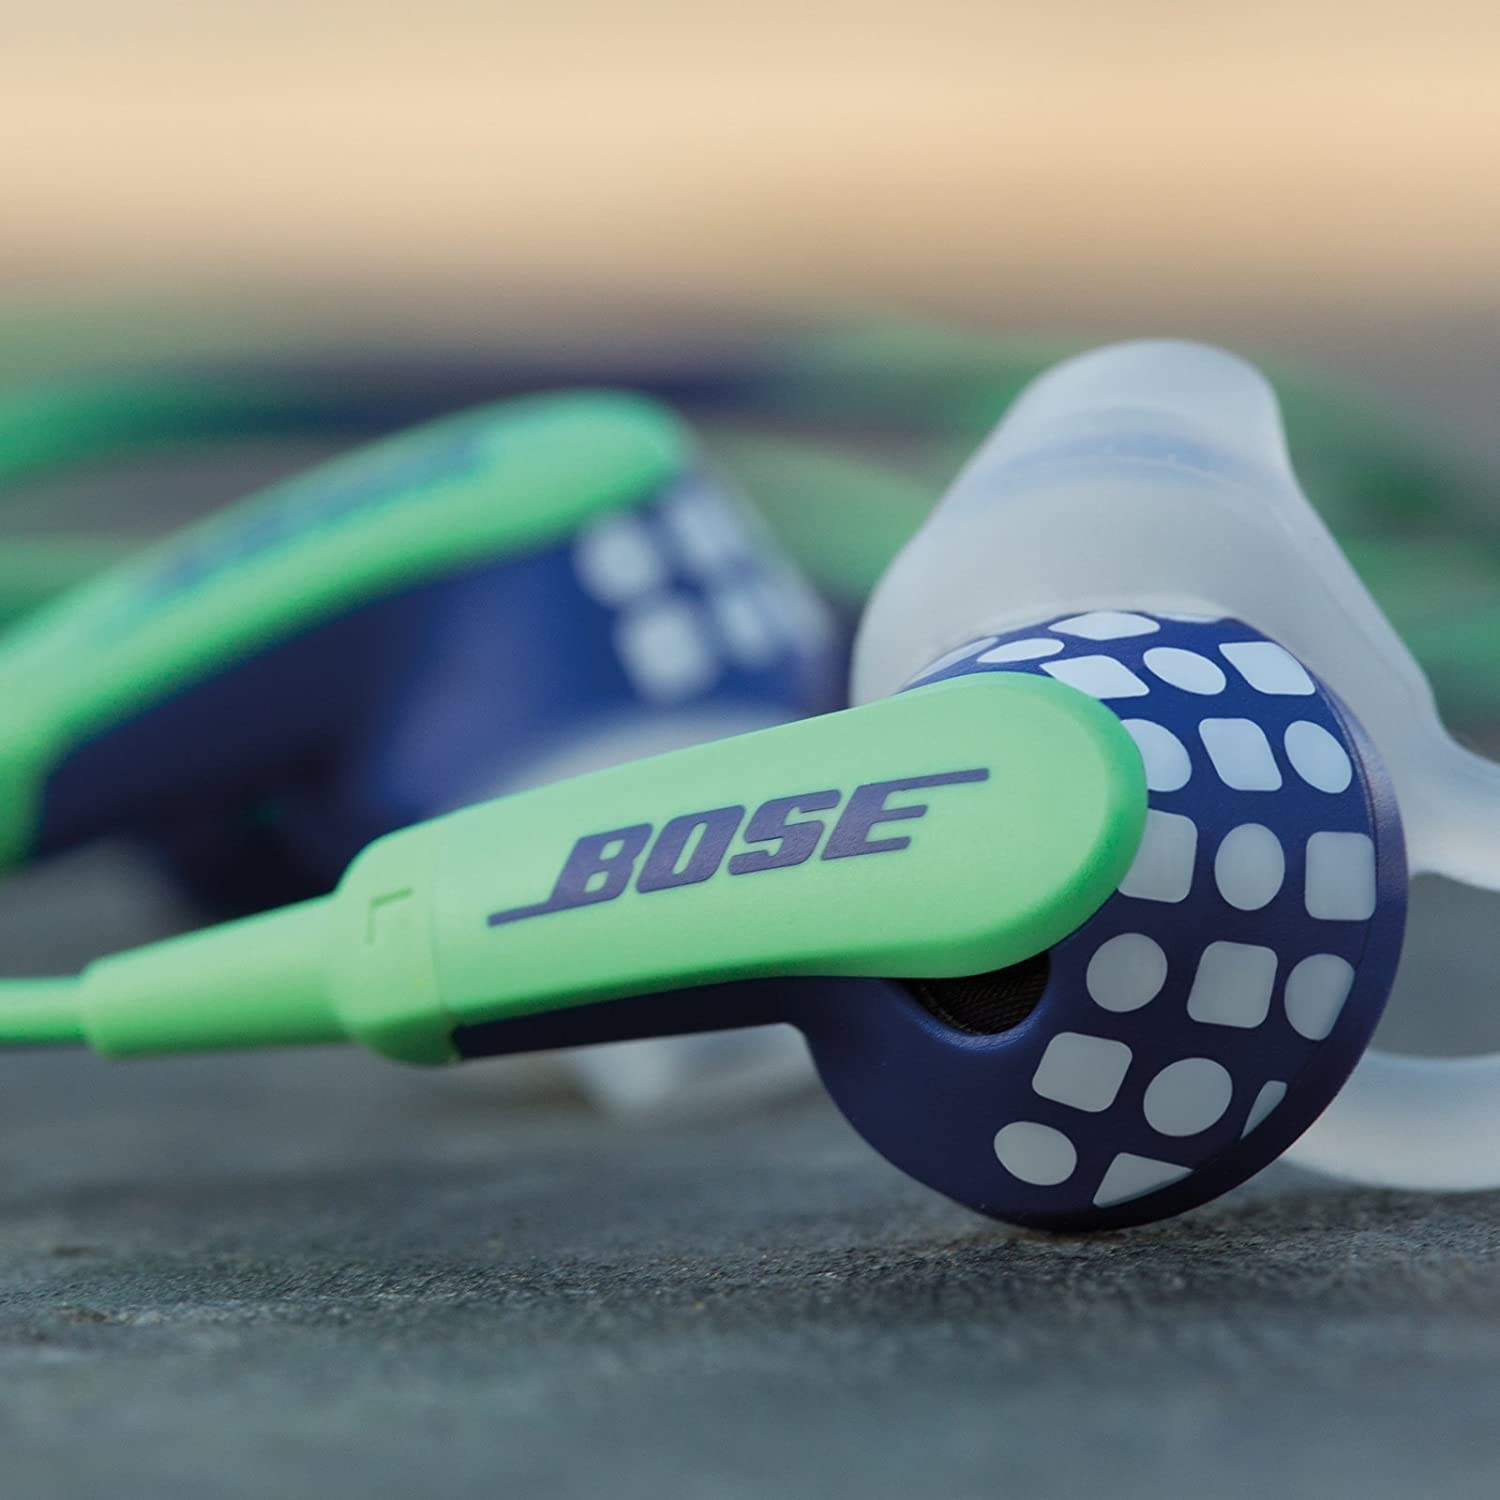 bose freestyle. buy bose freestyle earbuds (multi-color) online at low prices in india - amazon.in l